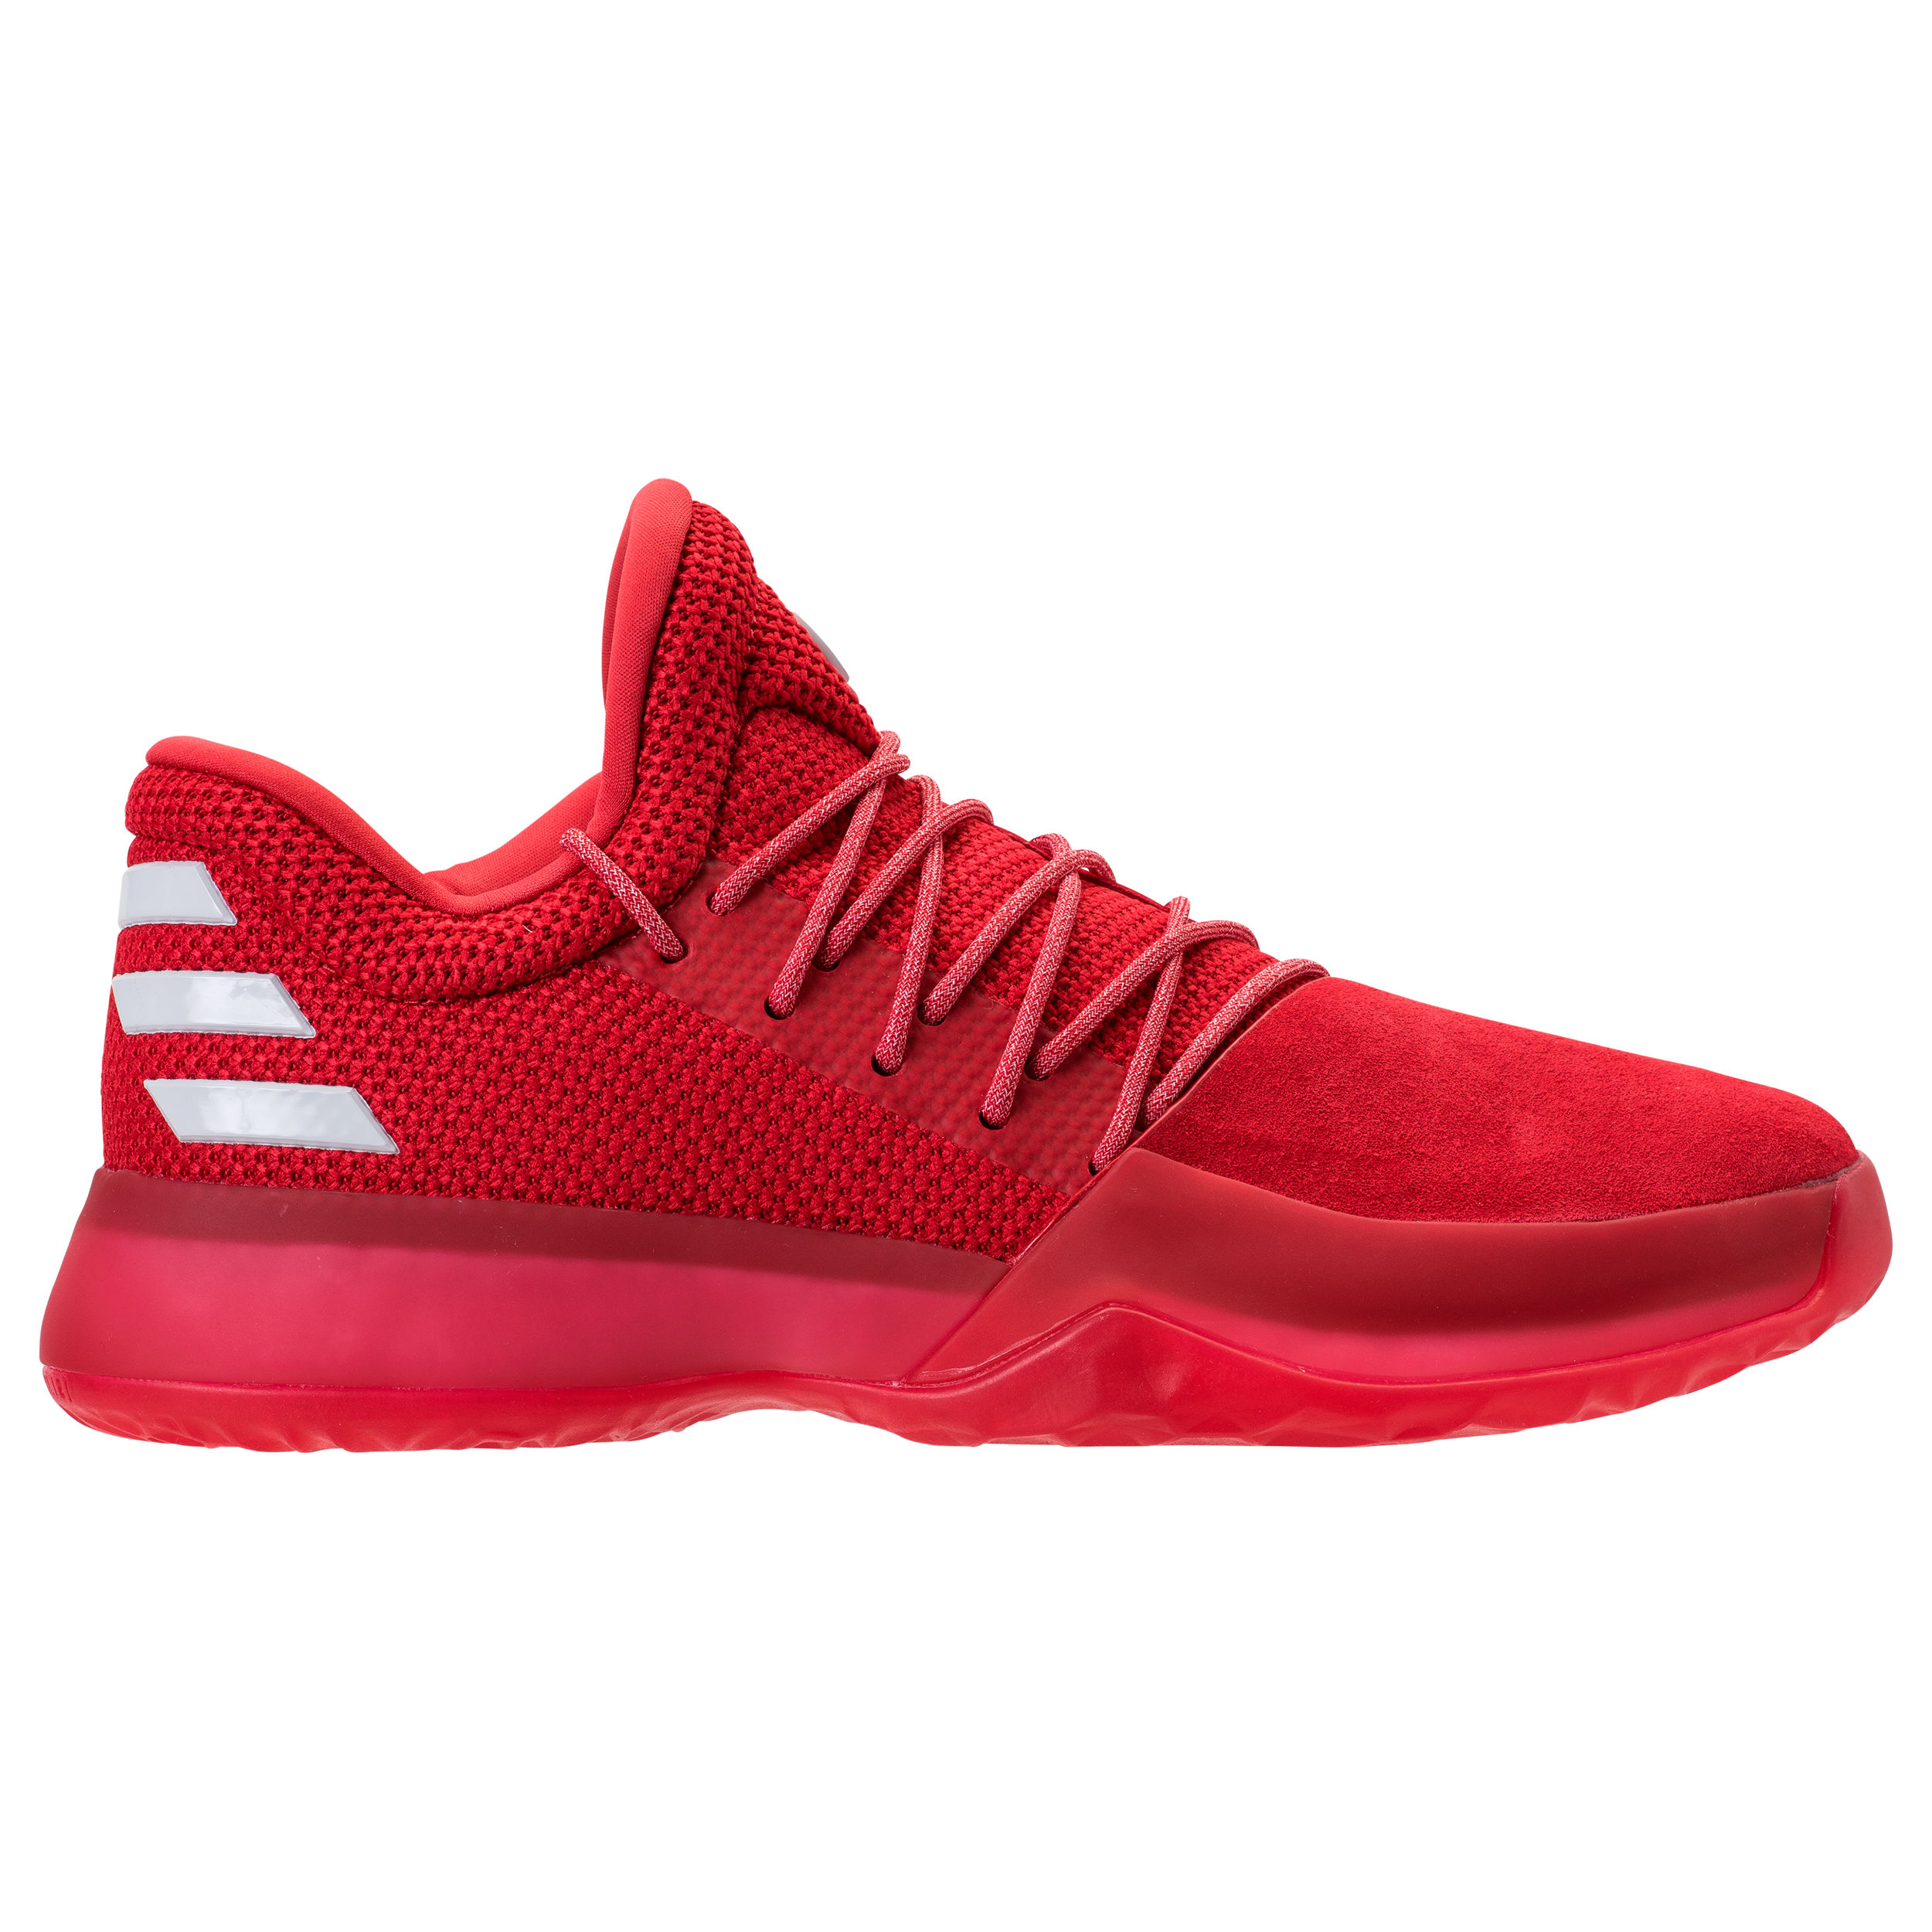 0317c0918c3 adidas Harden Vol. 1 Archives - WearTesters